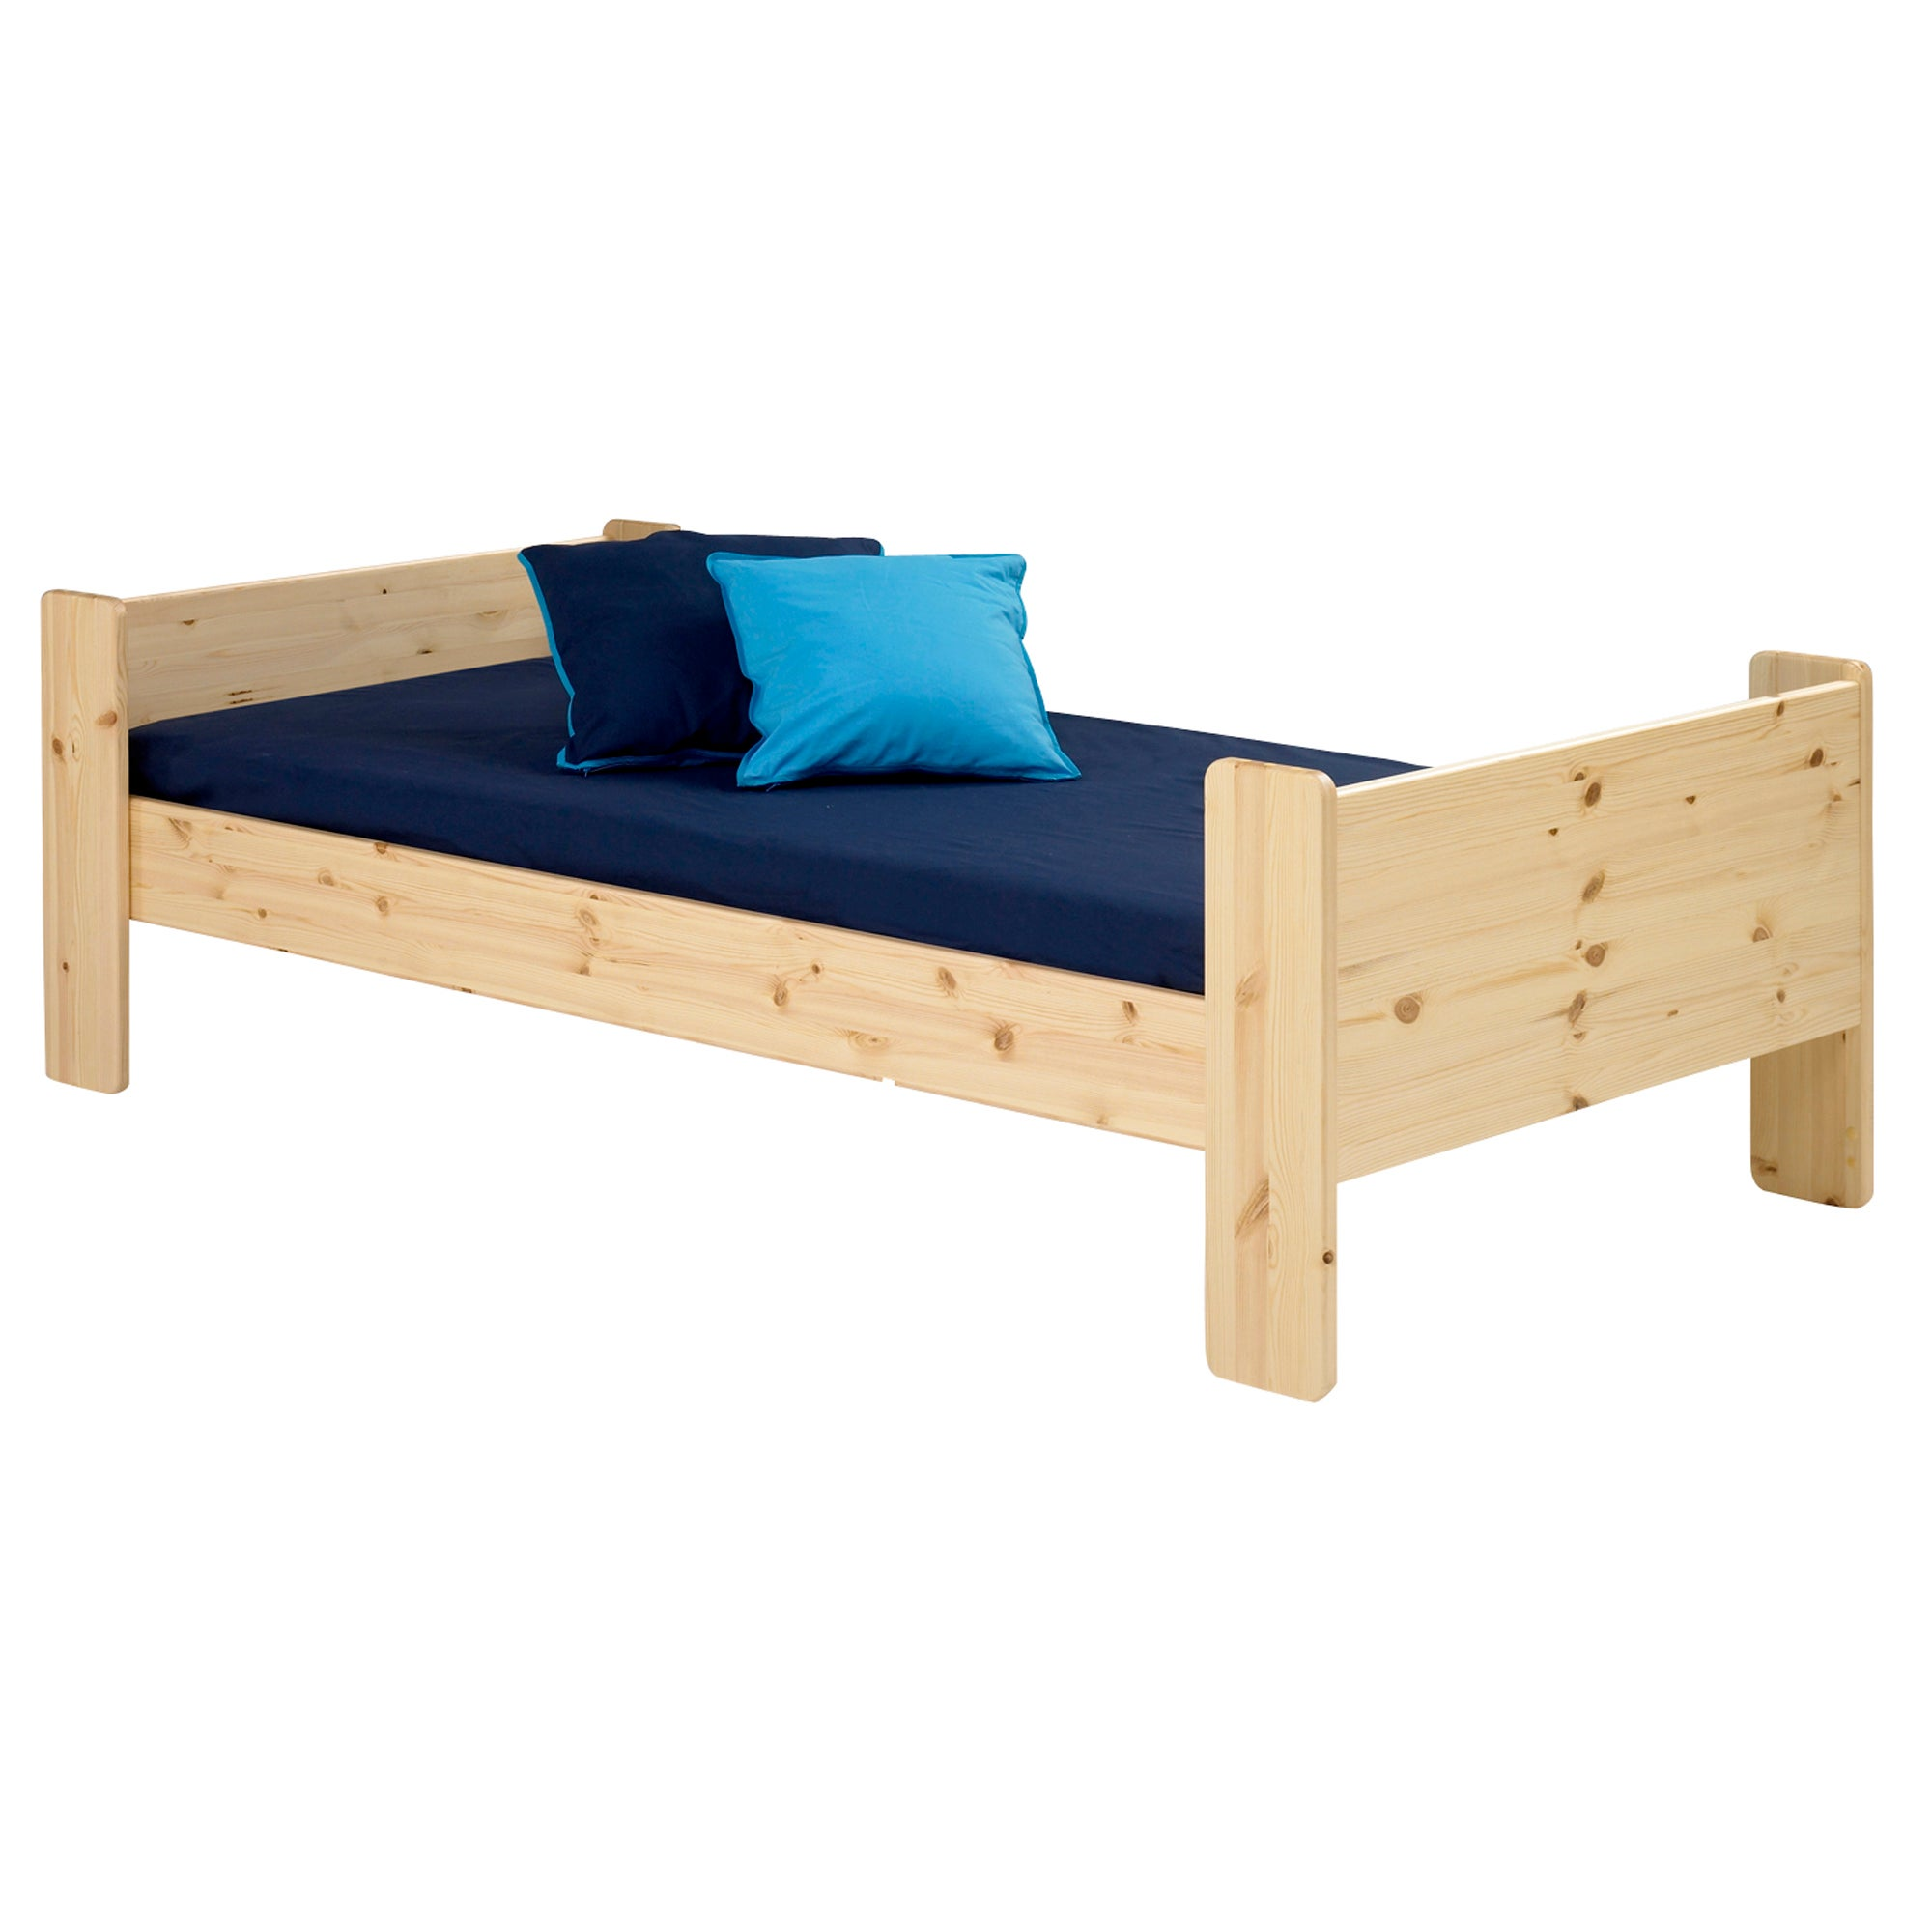 Kids Harper Pine Single Bed Frame